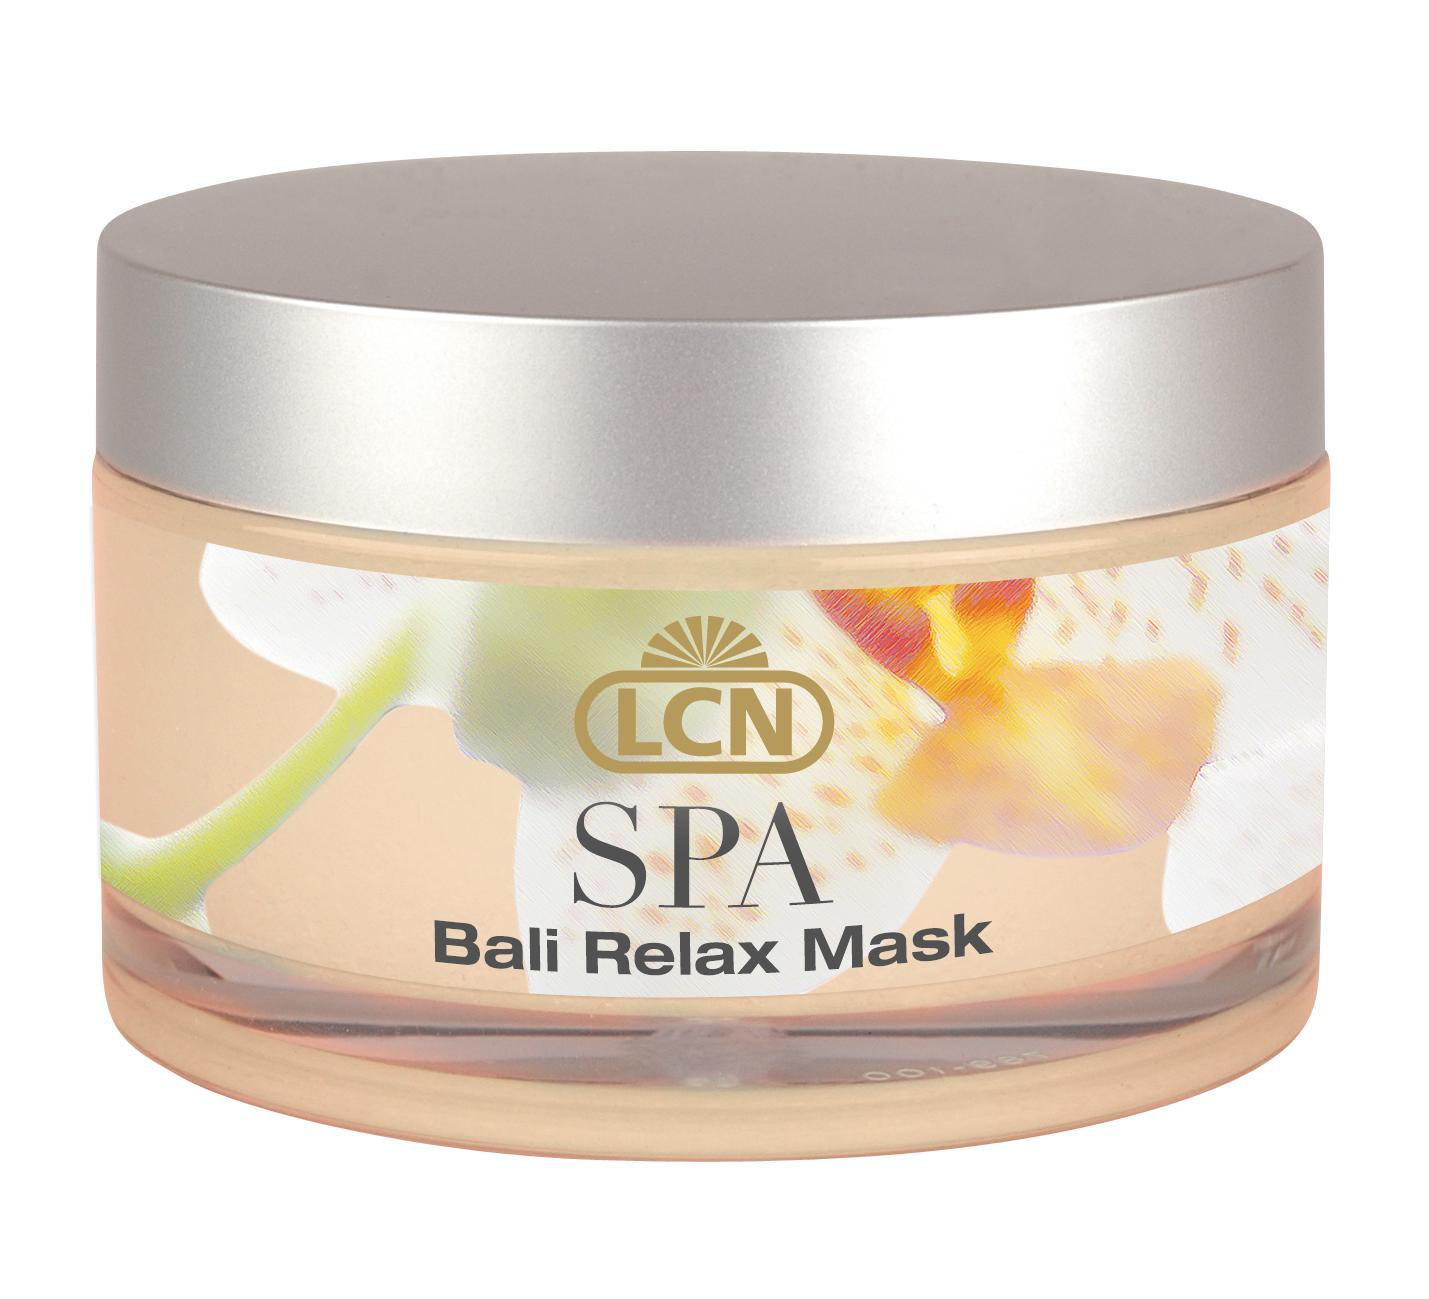 SPA Bali Relax Mask, 100ml